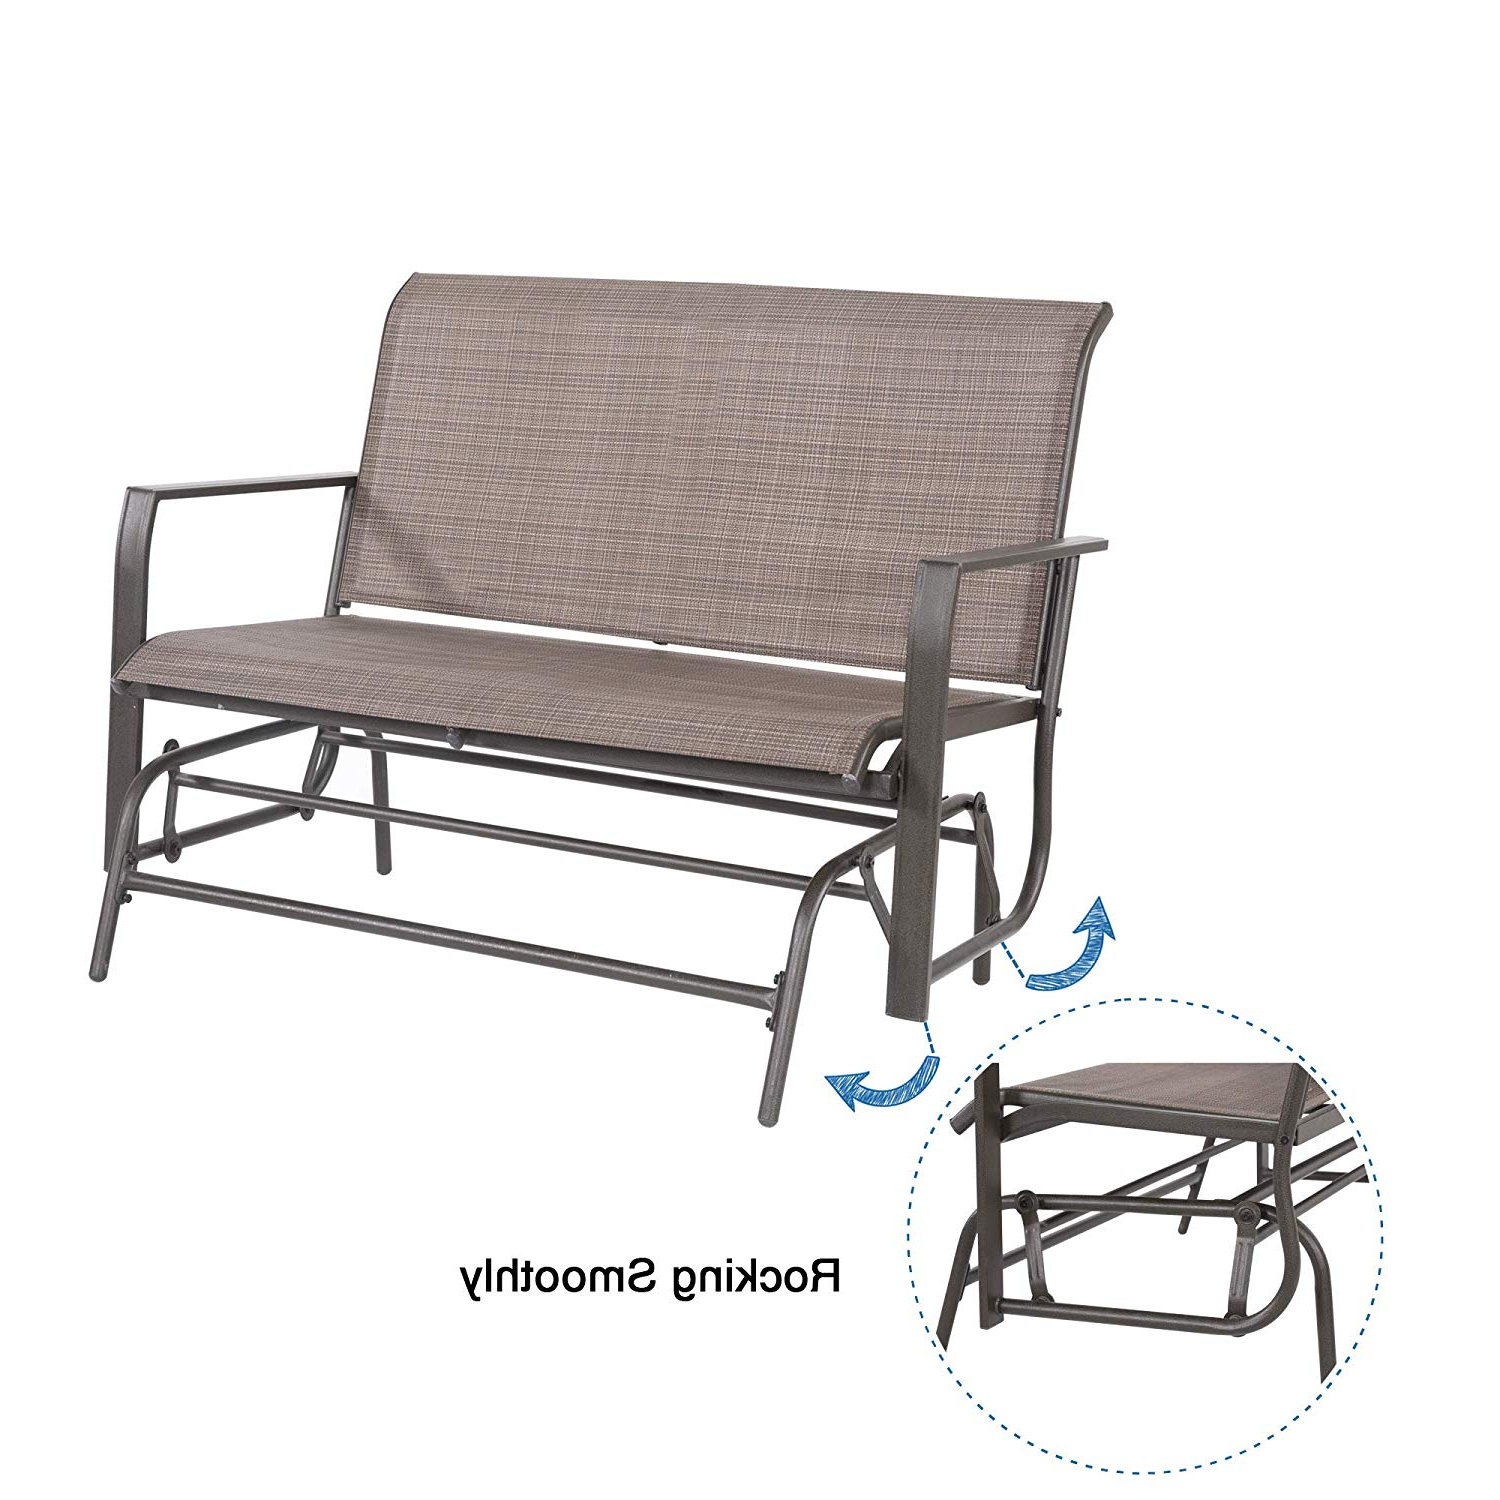 Outdoor Patio Swing Glider Benches Regarding Well Known Homevibes Patio Swing Glider Bench Outdoor Rocking Chair (Gallery 27 of 30)